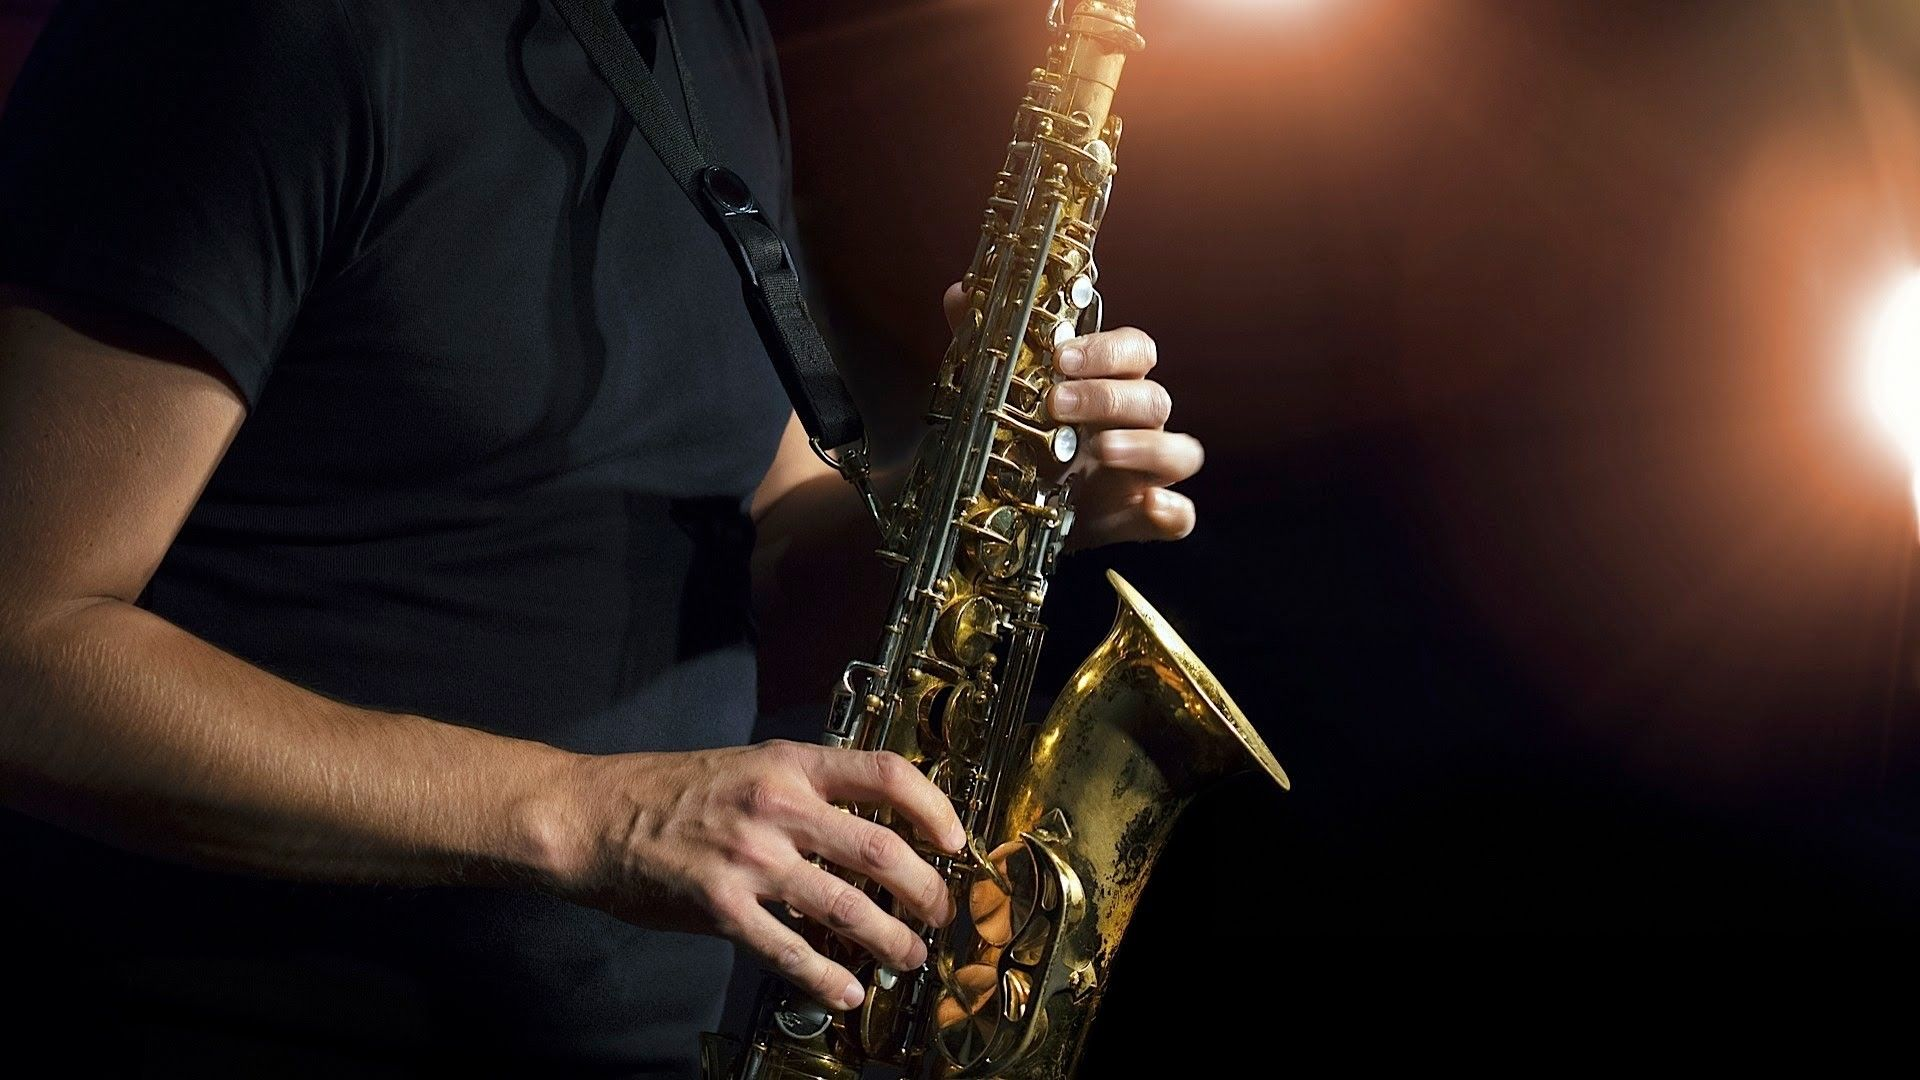 Saxophone Wallpaper Group (67+), Fondos de pantalla HD